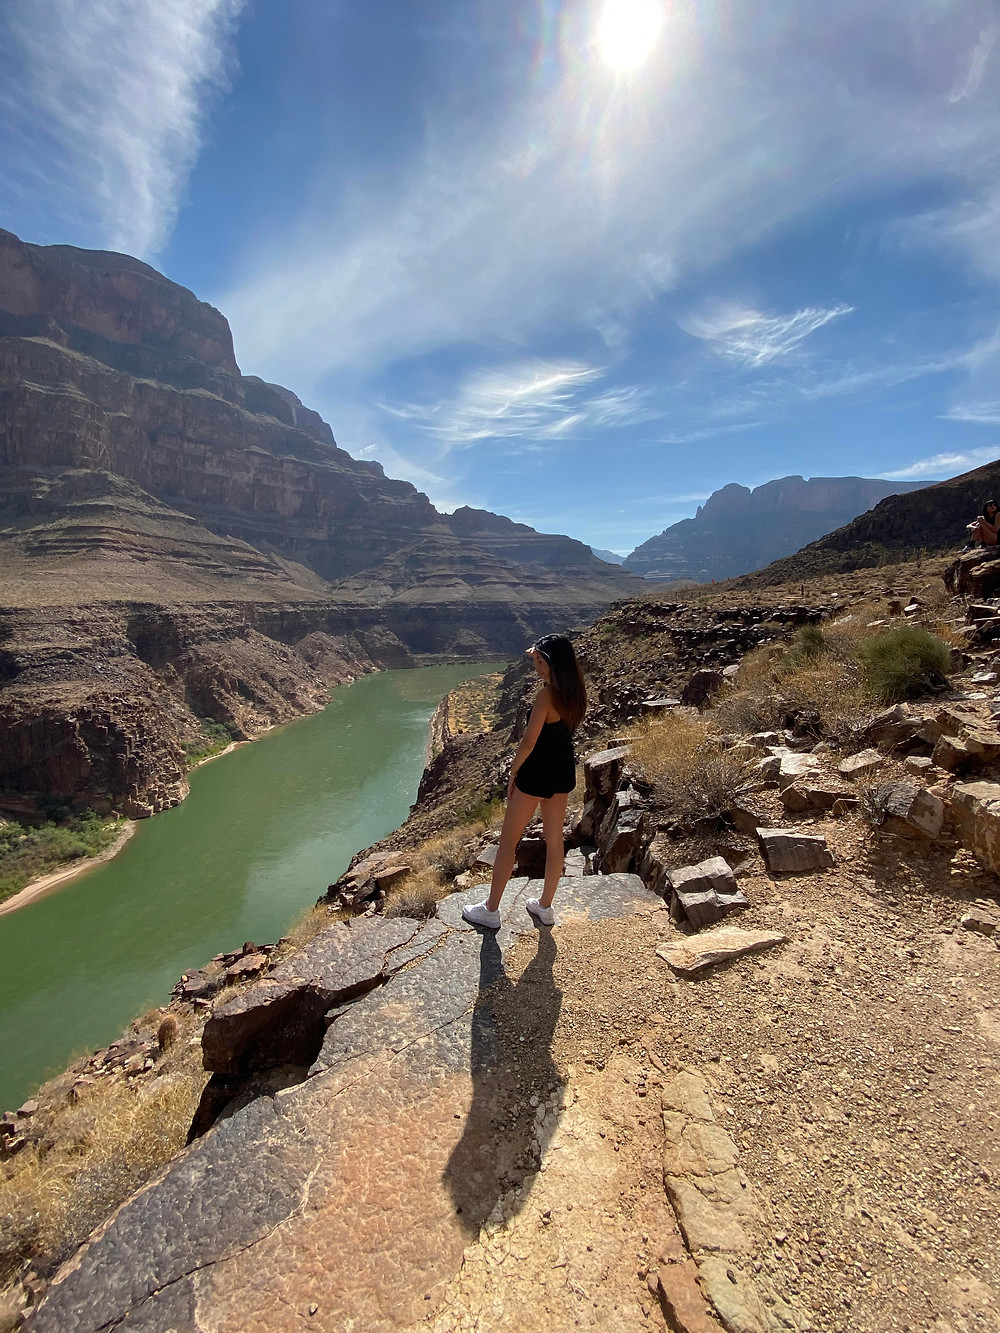 A woman gazes out over the green river and brown rocks of the Grand Canyon in Arizona